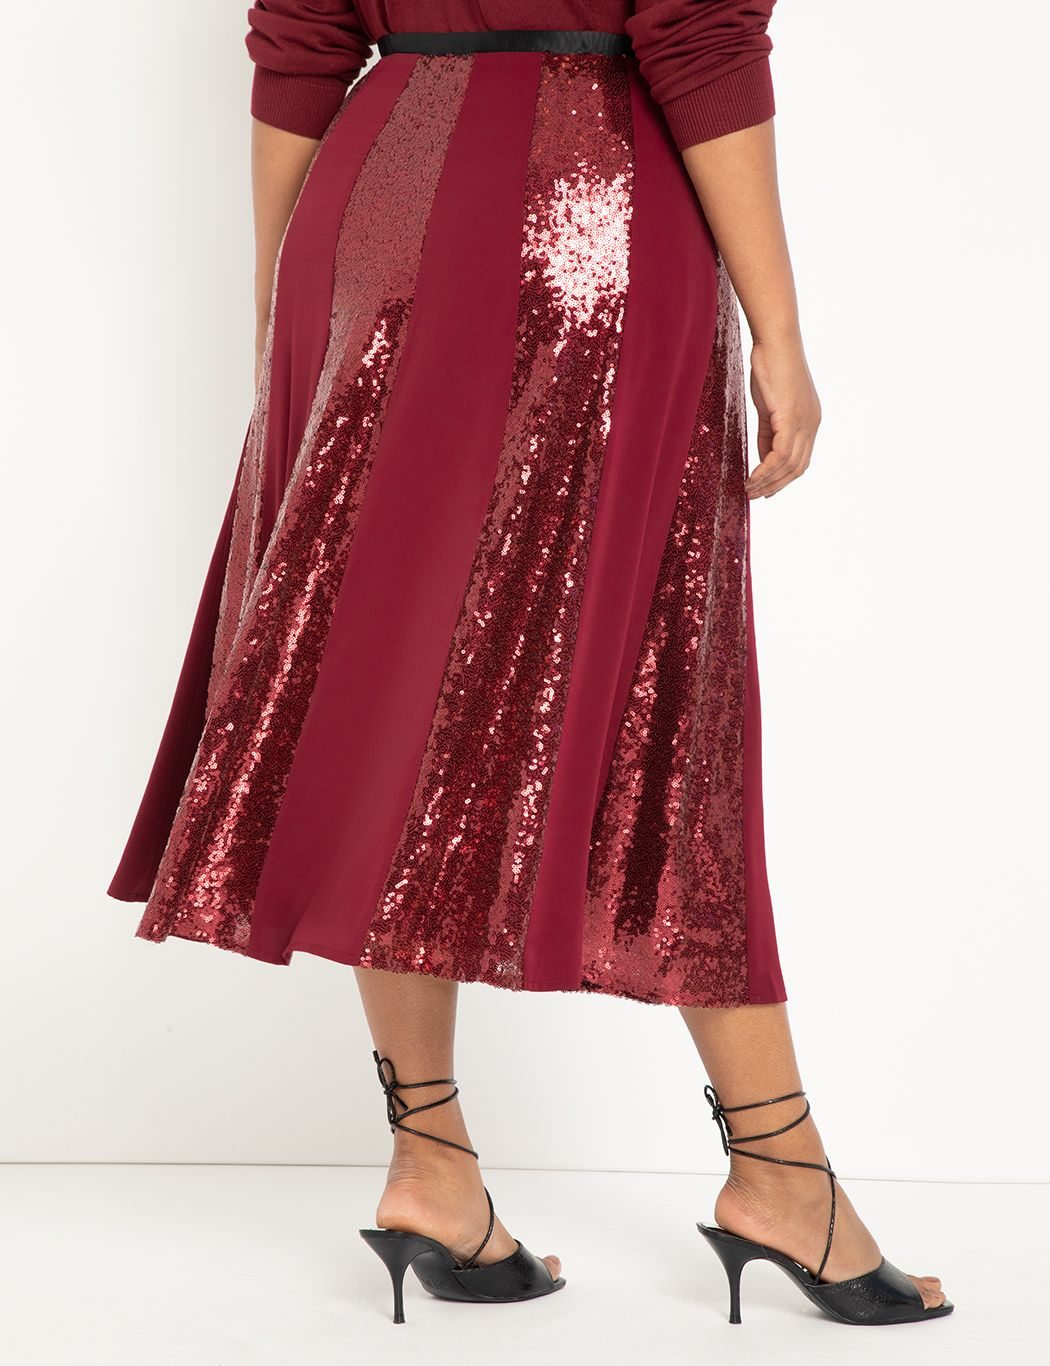 Sequin Skirt with Godets